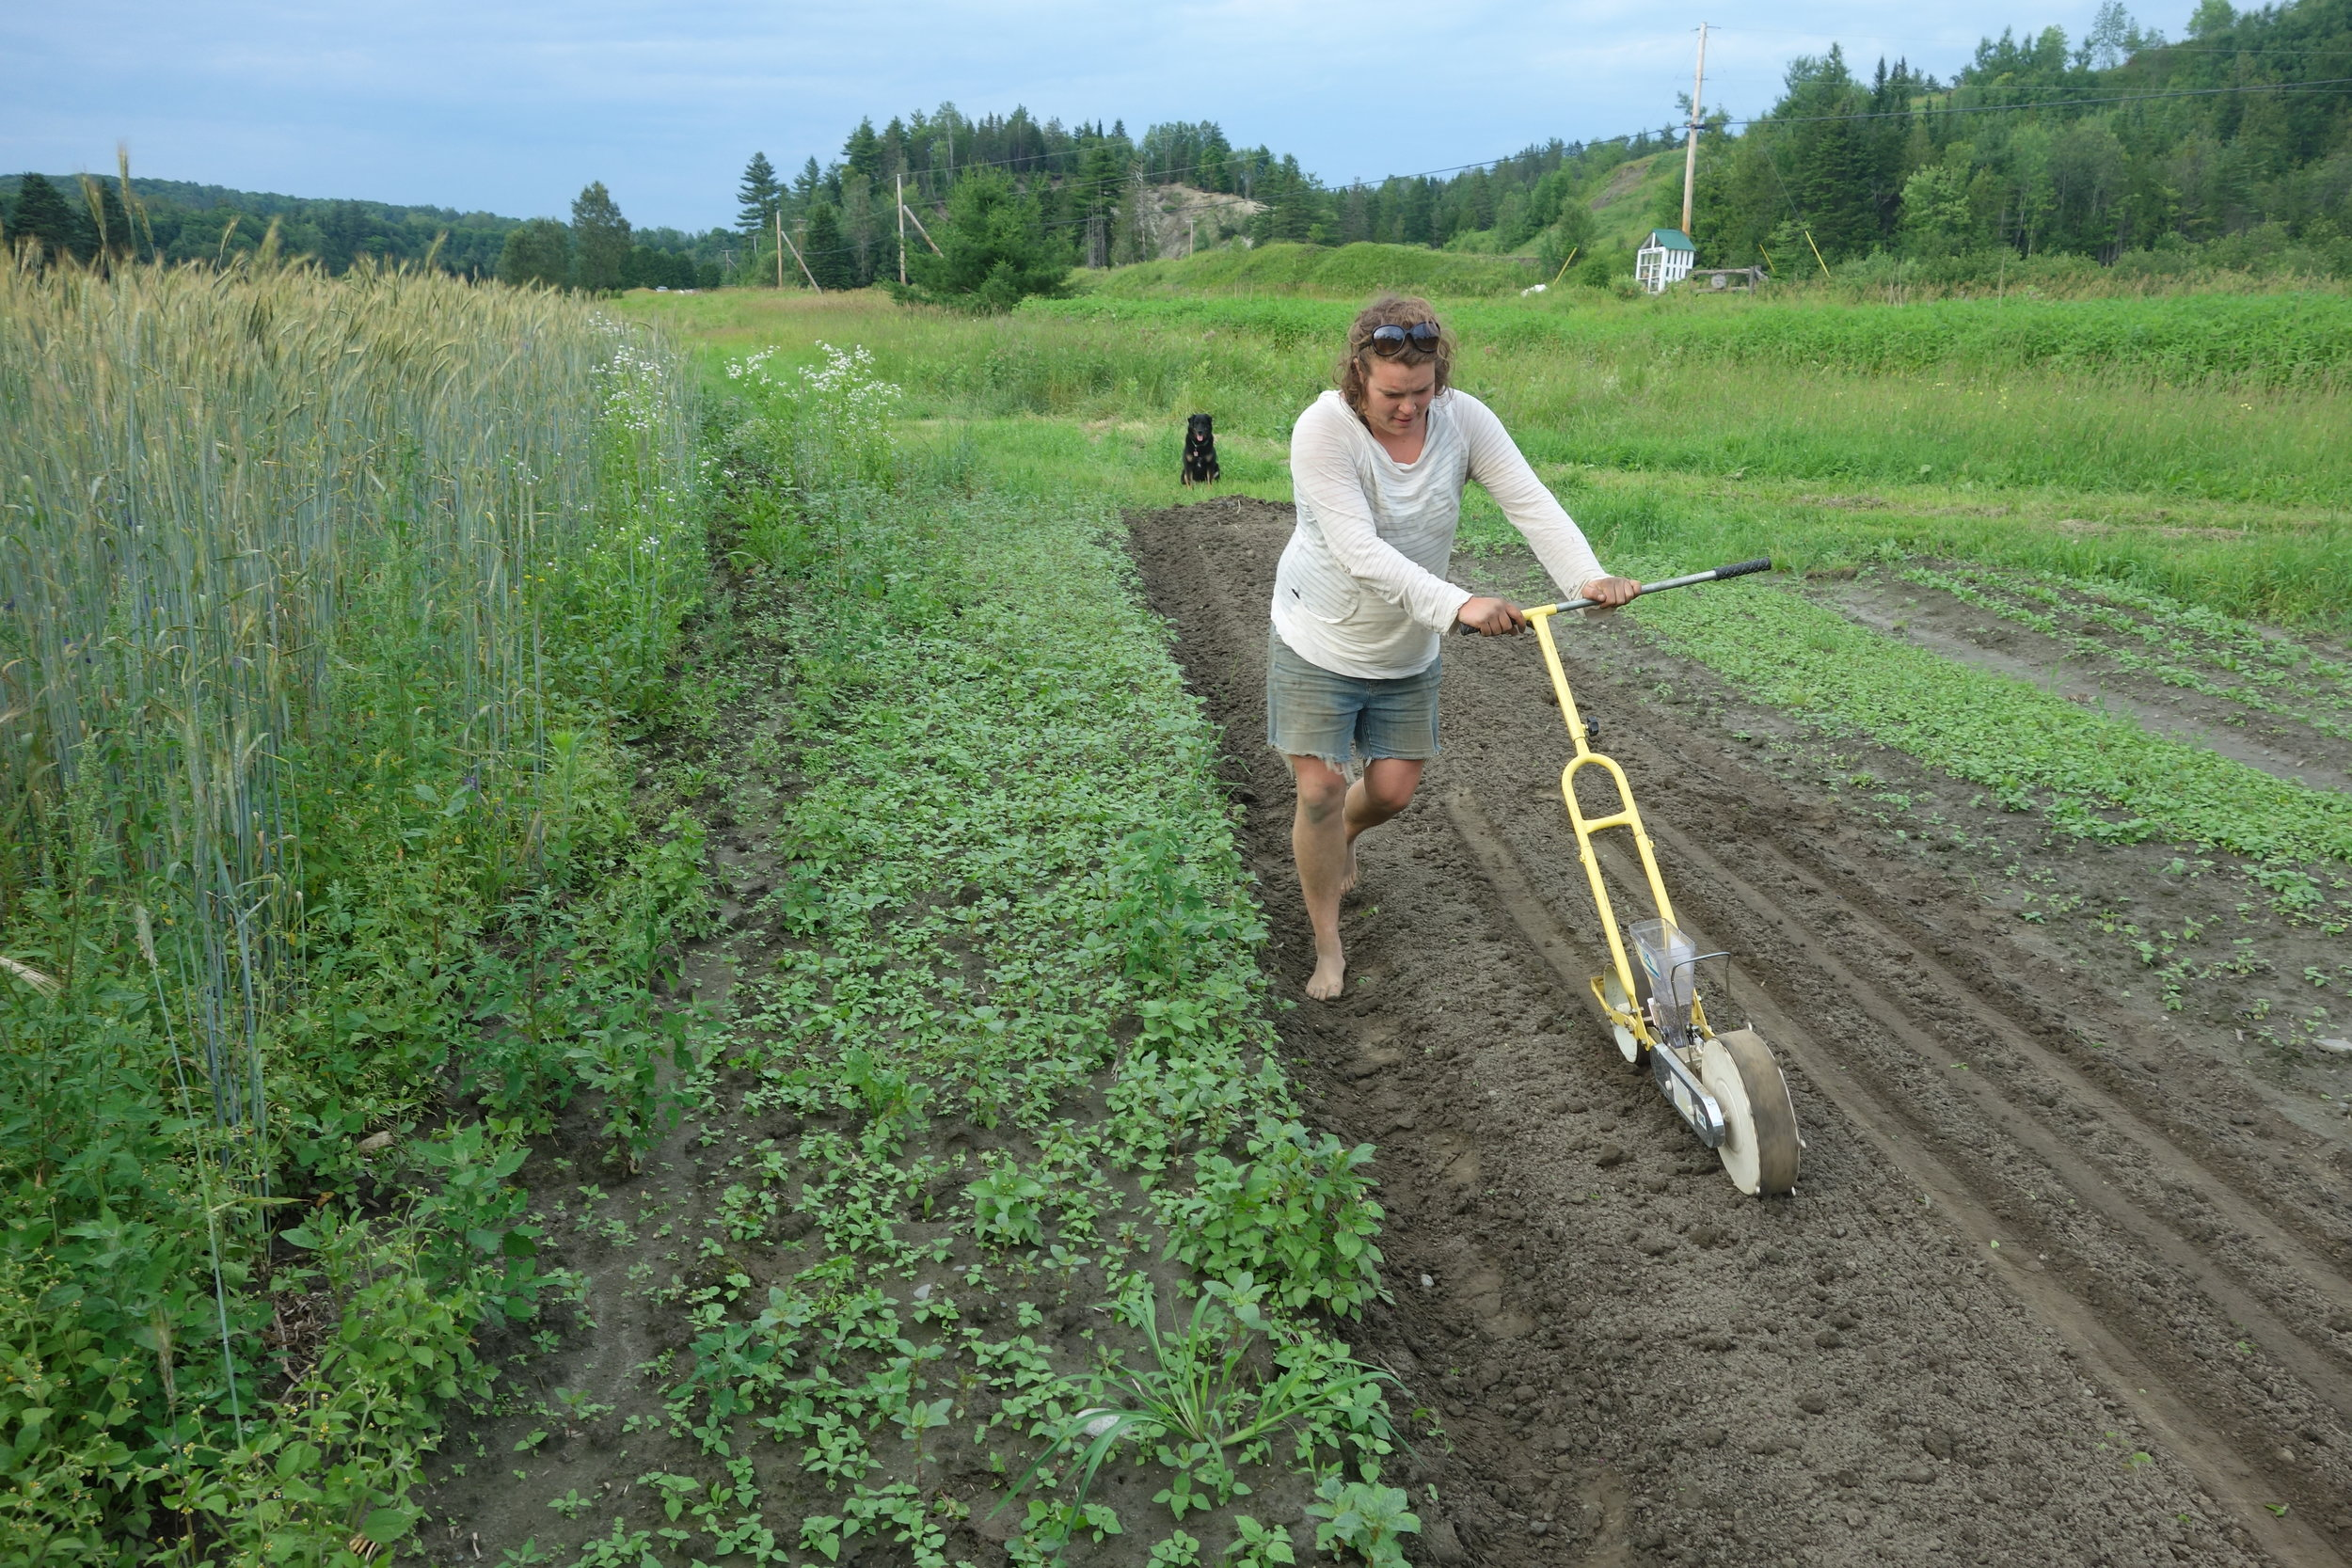 This could be the future of farming: small farmers growing our food and taking care of our planet.